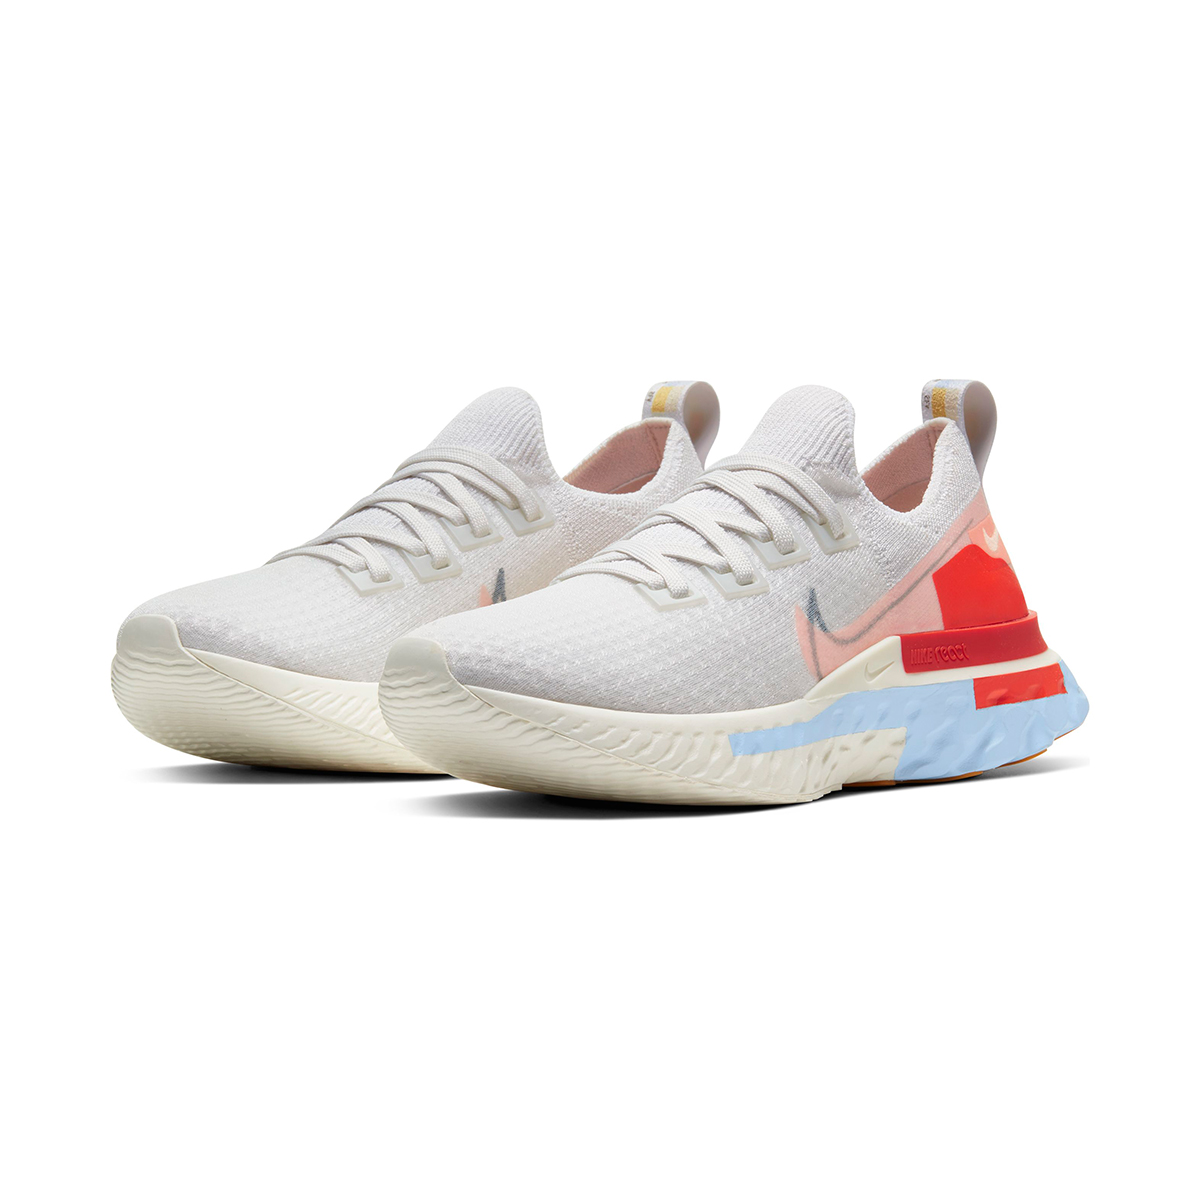 Women's Nike React Infinity Run Flyknit Running Shoe - Color: Platinum Tint/Washed Coral - Size: 5 - Width: Regular, Platinum Tint/Washed Coral, large, image 4